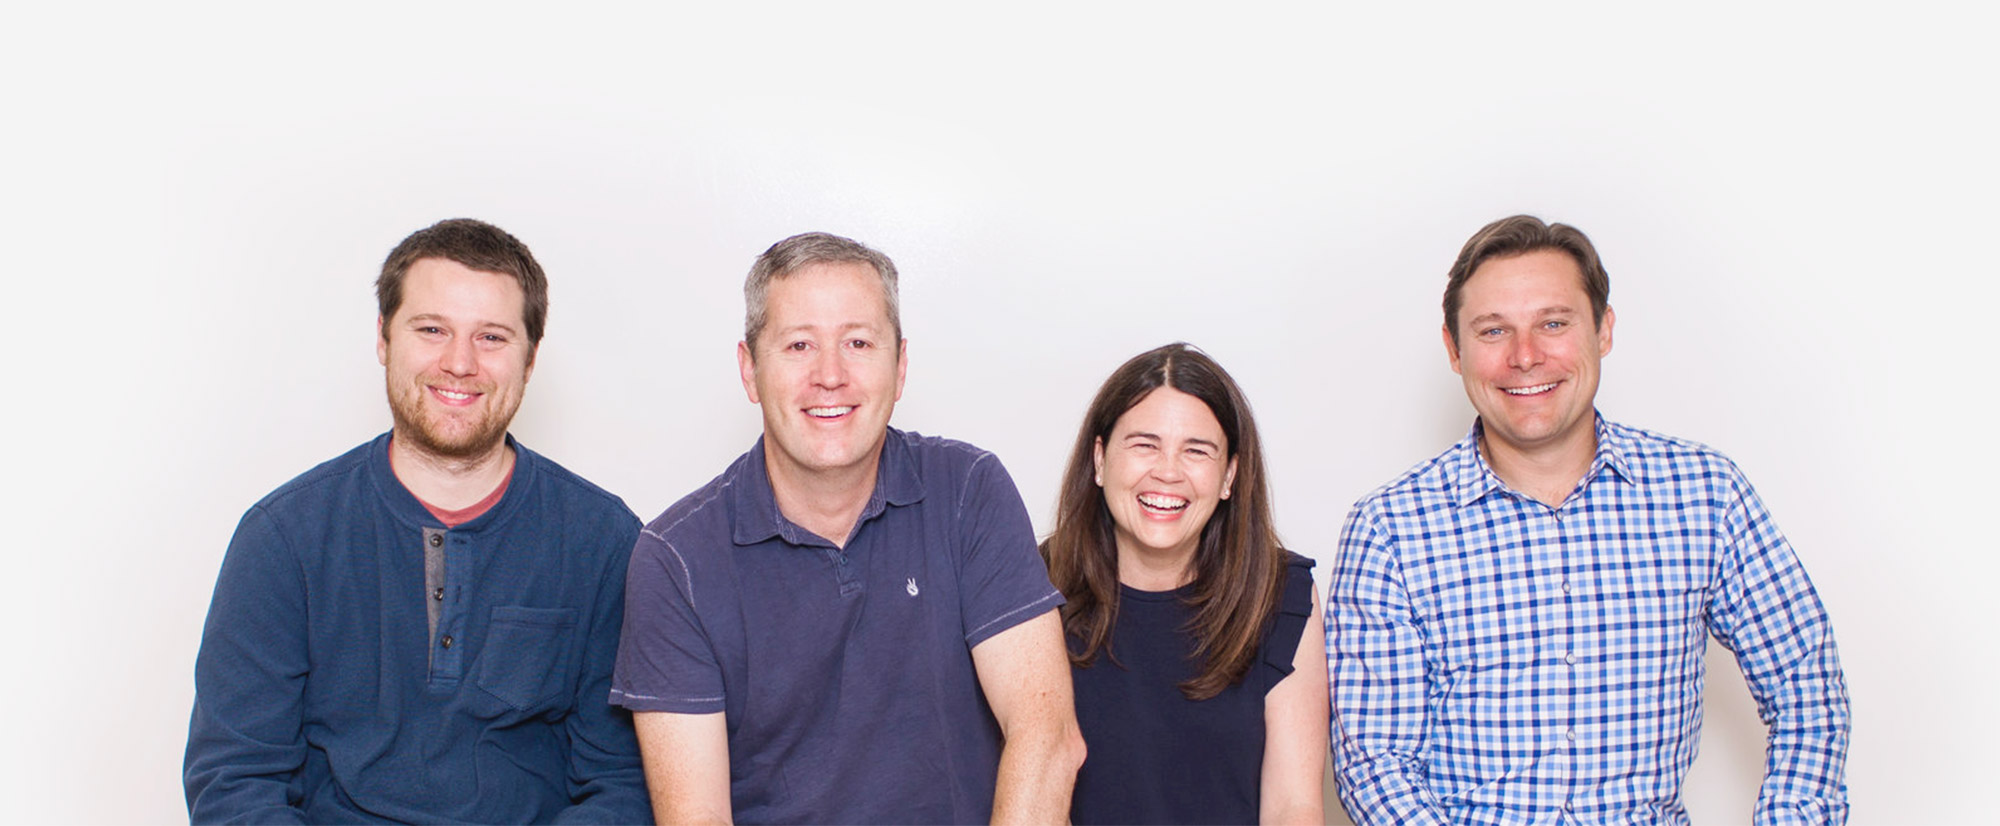 The Ladder Founders from left to right: Jack, Jamie, Laura, Jeff